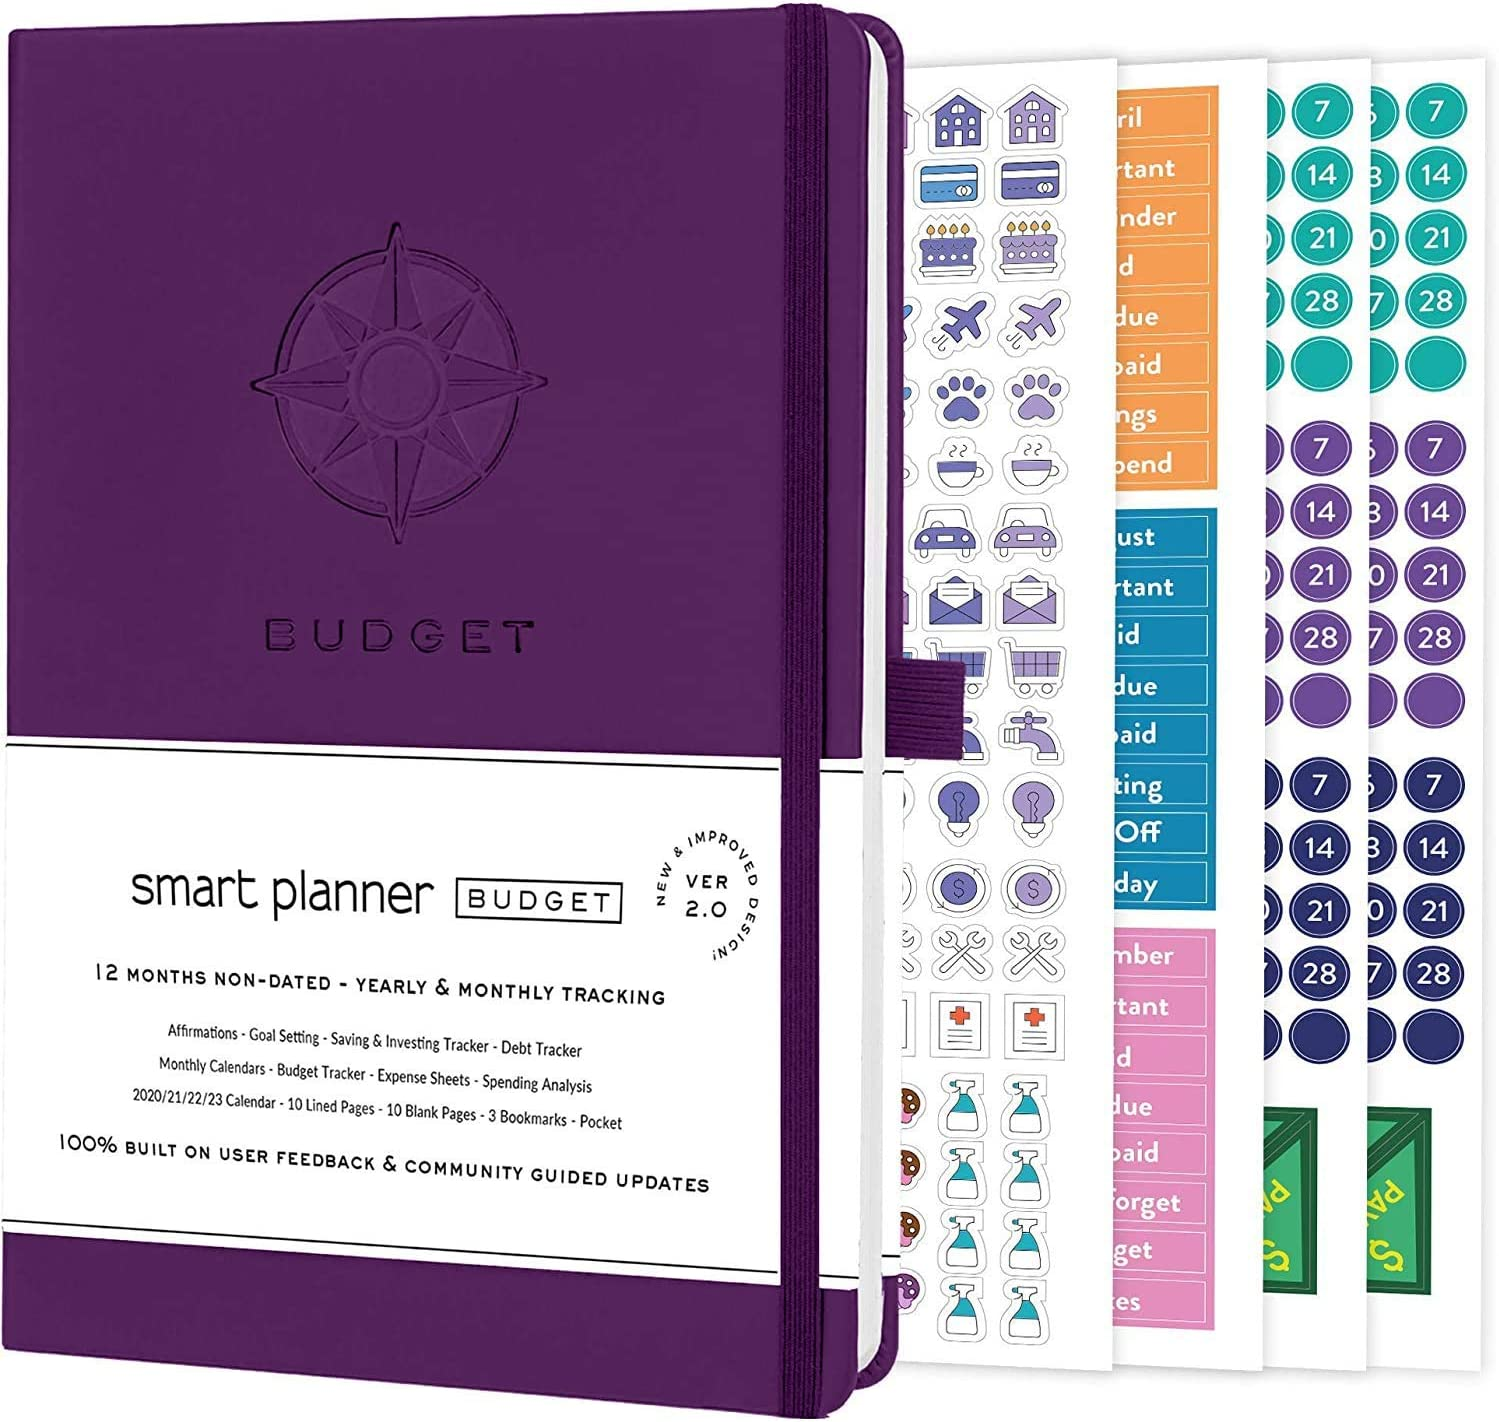 Smart Planner Budget Book – Budget Planner Organizer with Calendars, Debt Tracker, Expense Sheets, Savings Trackers and More – Inner Pocket for Receipts – Non-Dated (Purple)